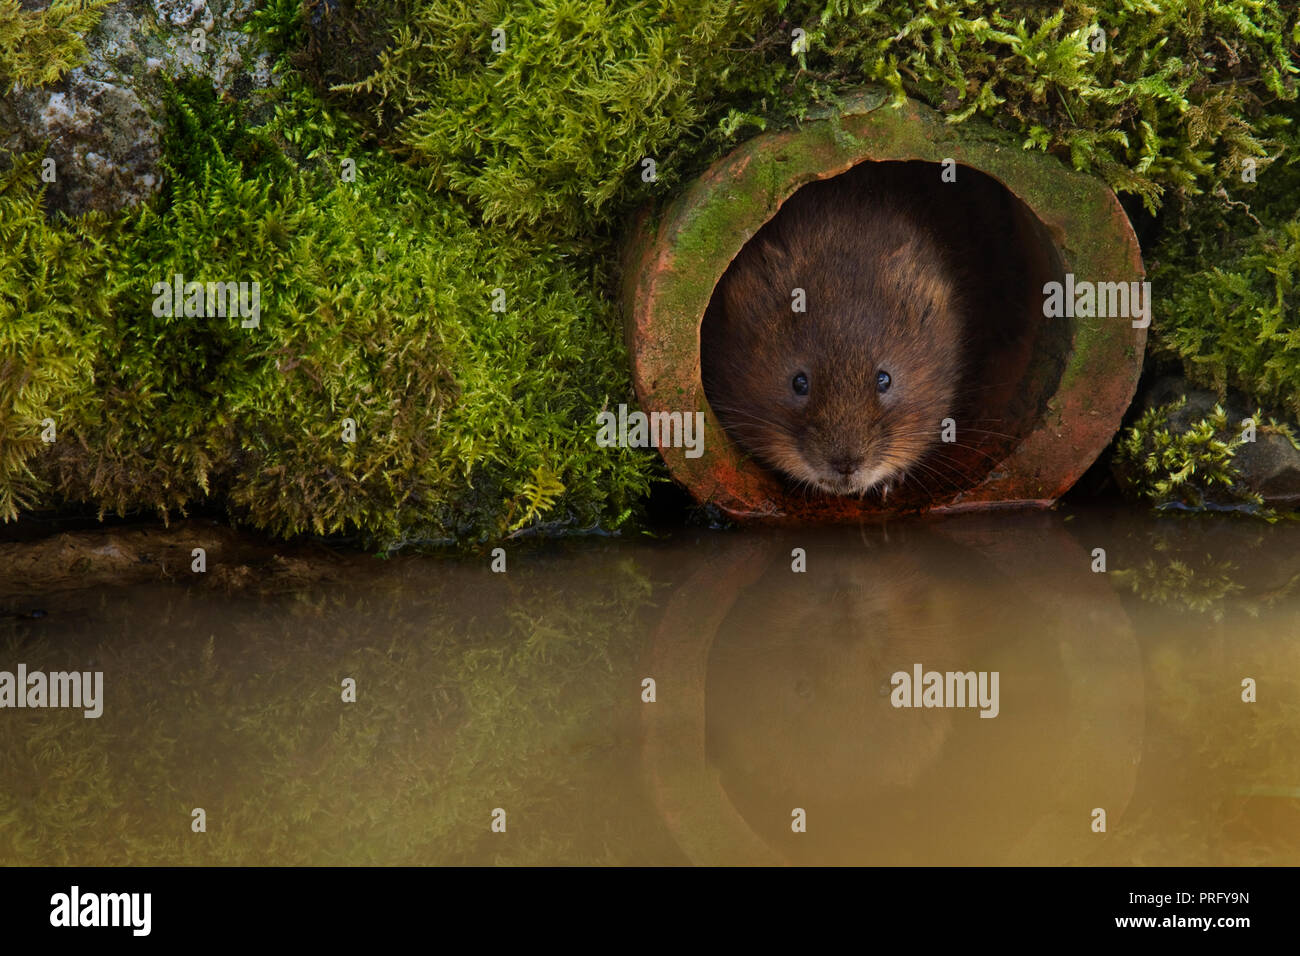 Single adult Water Vole  looking out of an old clay drainage pipe, Devon, UK. - Stock Image